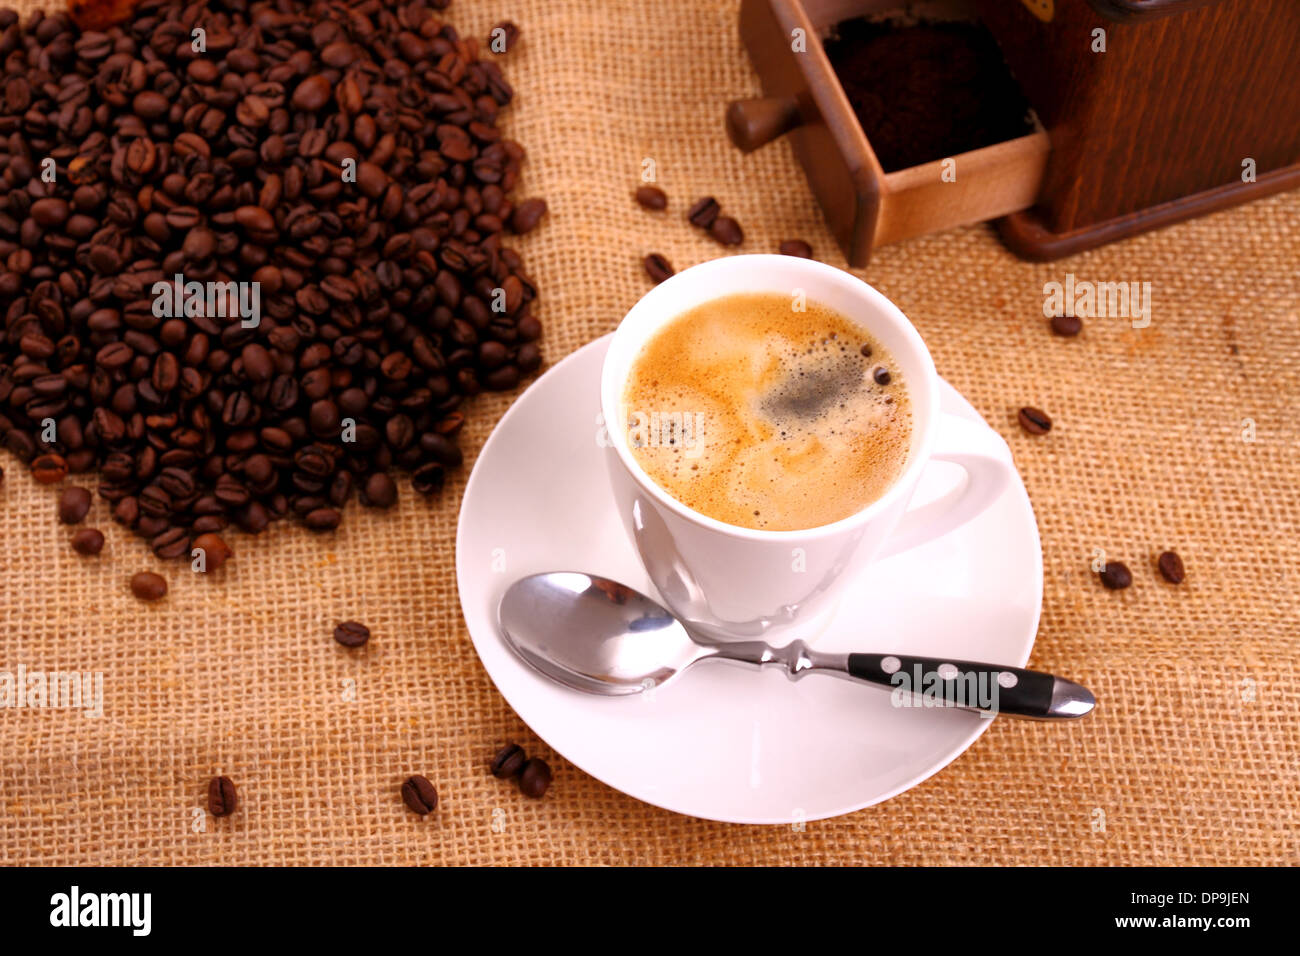 Coffee in white cup and coffee mill, horizontal - Stock Image